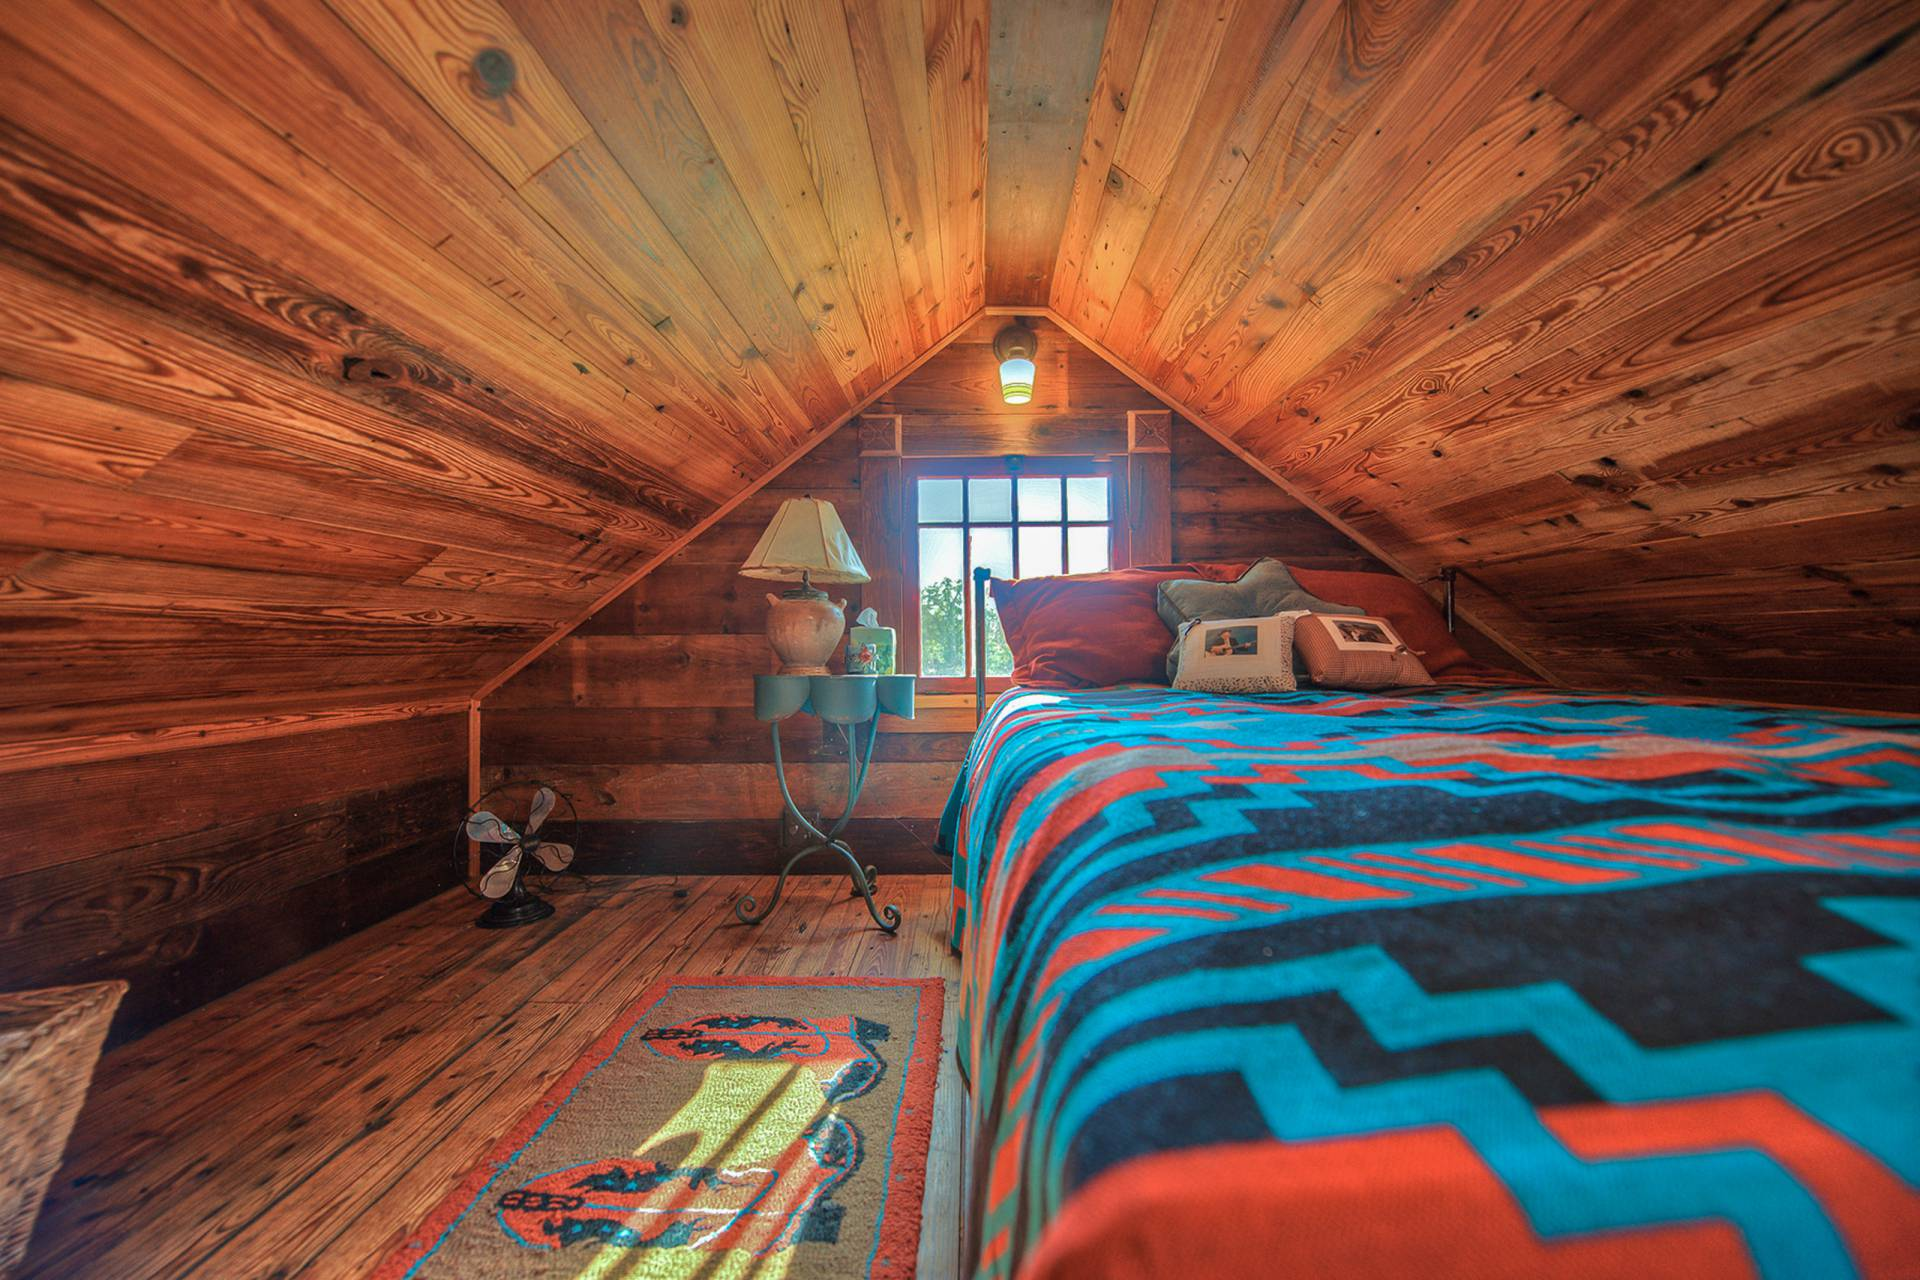 gallery the cowboy cabin tiny texas houses small house bliss published february 29 2016 at 1920 1280 in the cowboy cabin tiny texas houses